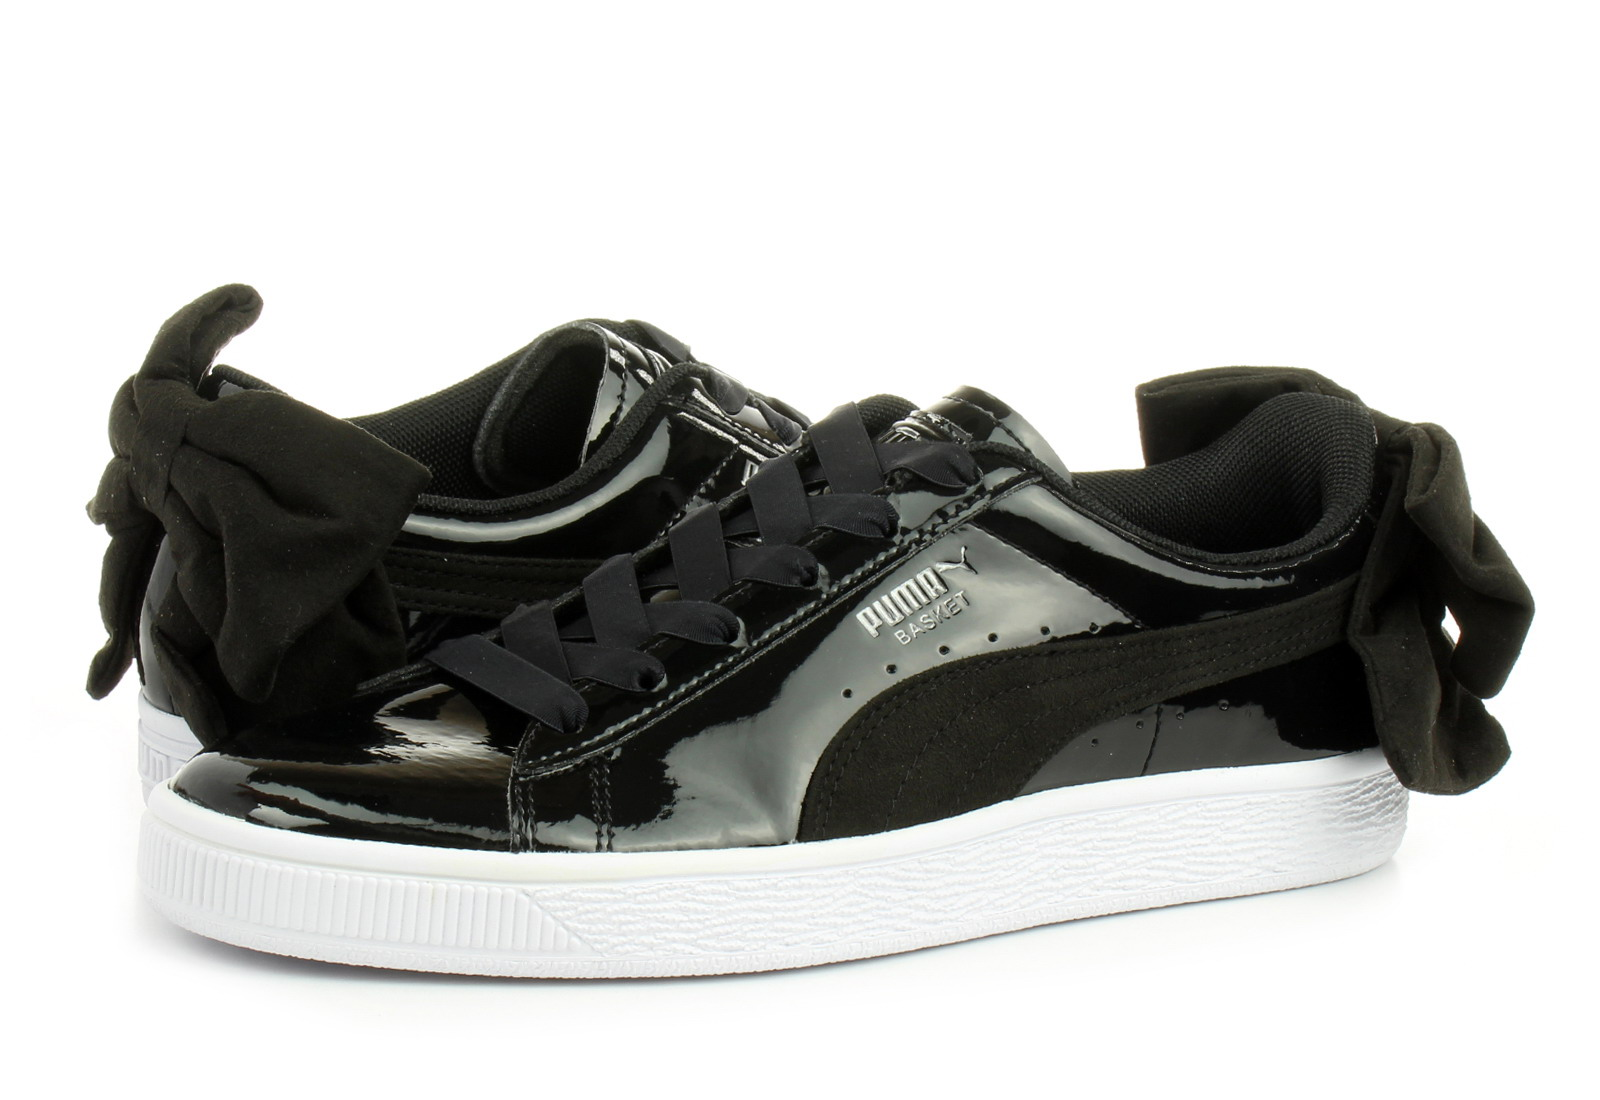 6847877156c Puma Shoes - Basket Bow Sb Wns - 36735301-blk - Online shop for ...